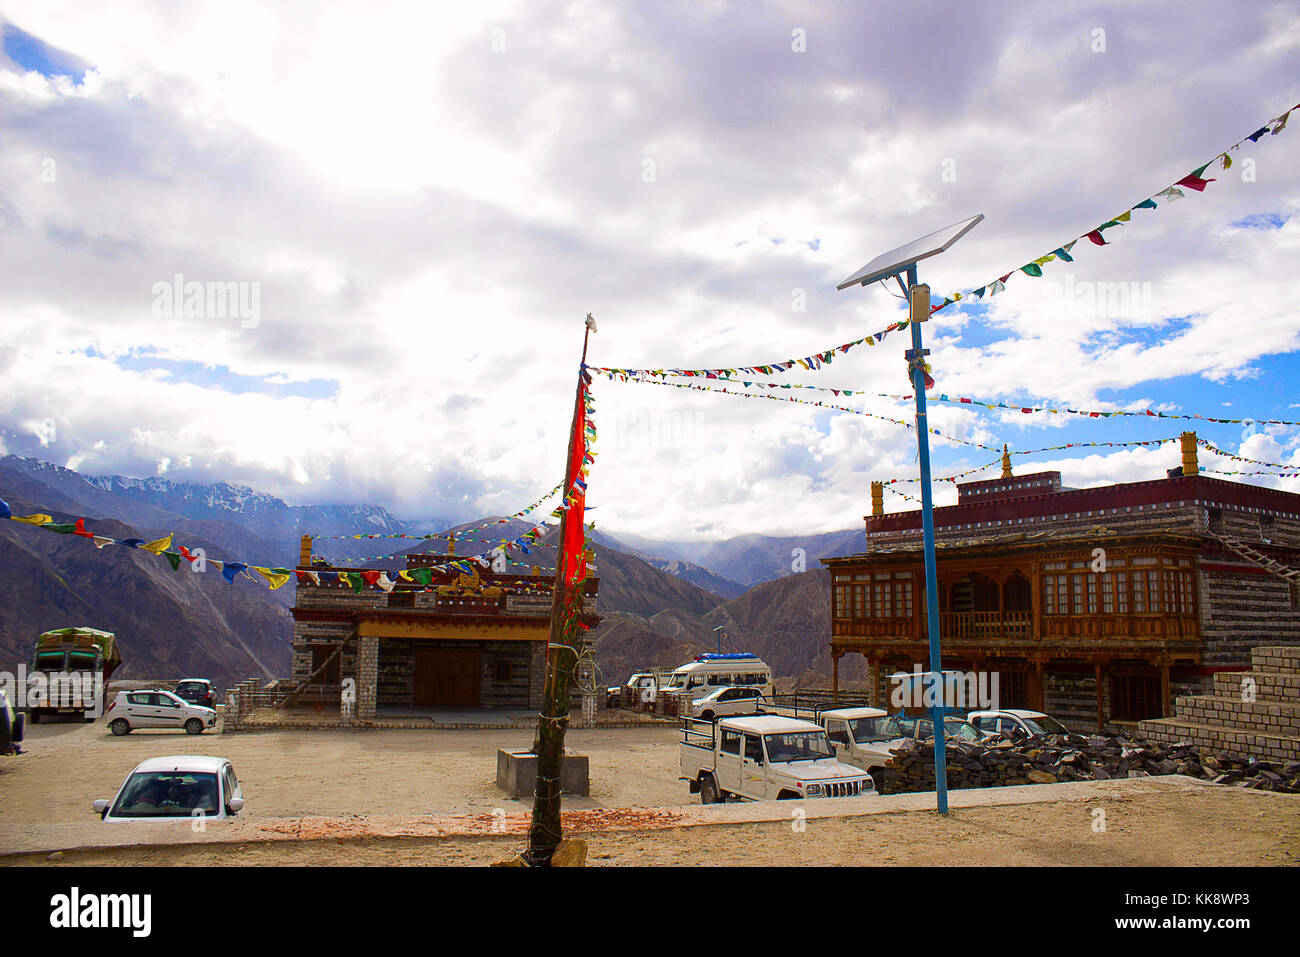 Colorful Décor at Monastery, in Village of Gue, Spiti, Shimla, India - Stock Image